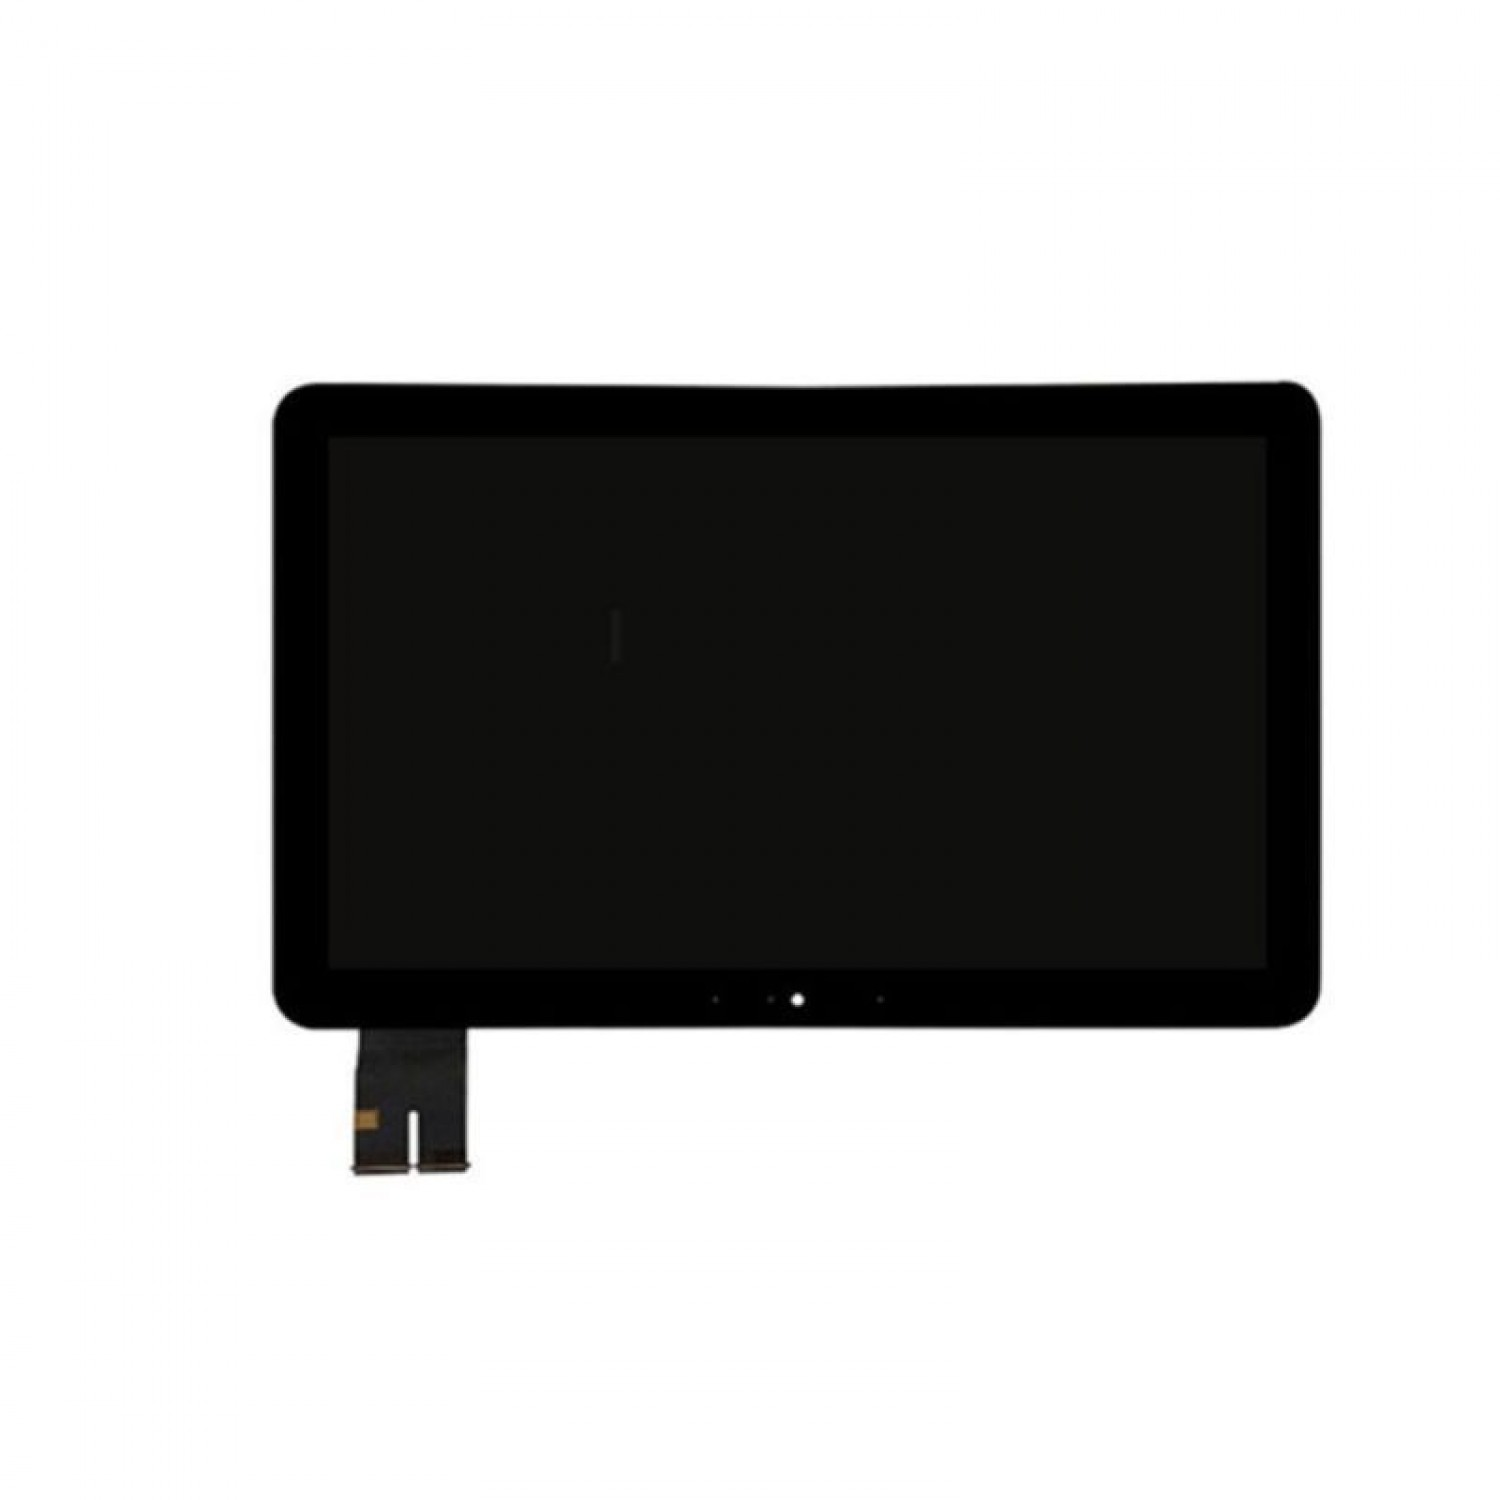 LCD digitizer assembly for ASUS T300chi T300 2560*1440 40 pins